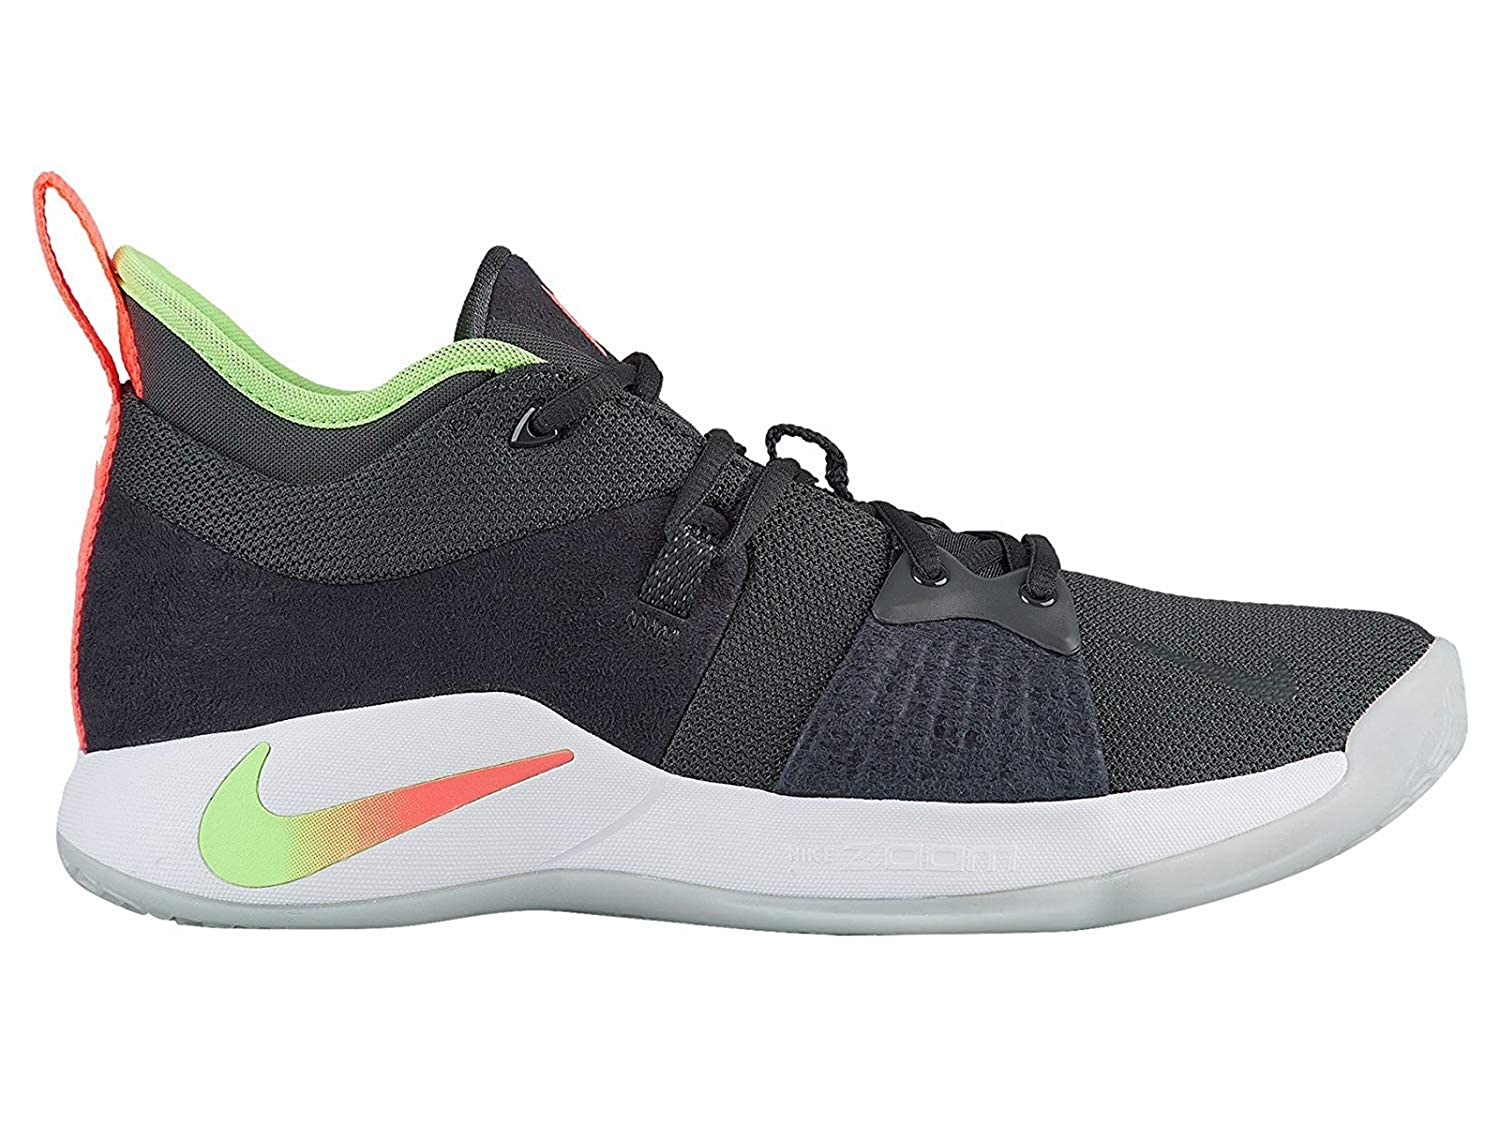 online retailer f80ee 17d55 Nike Men's PG 2 Basketball Shoes (13, Anthracite/Hot Punch)